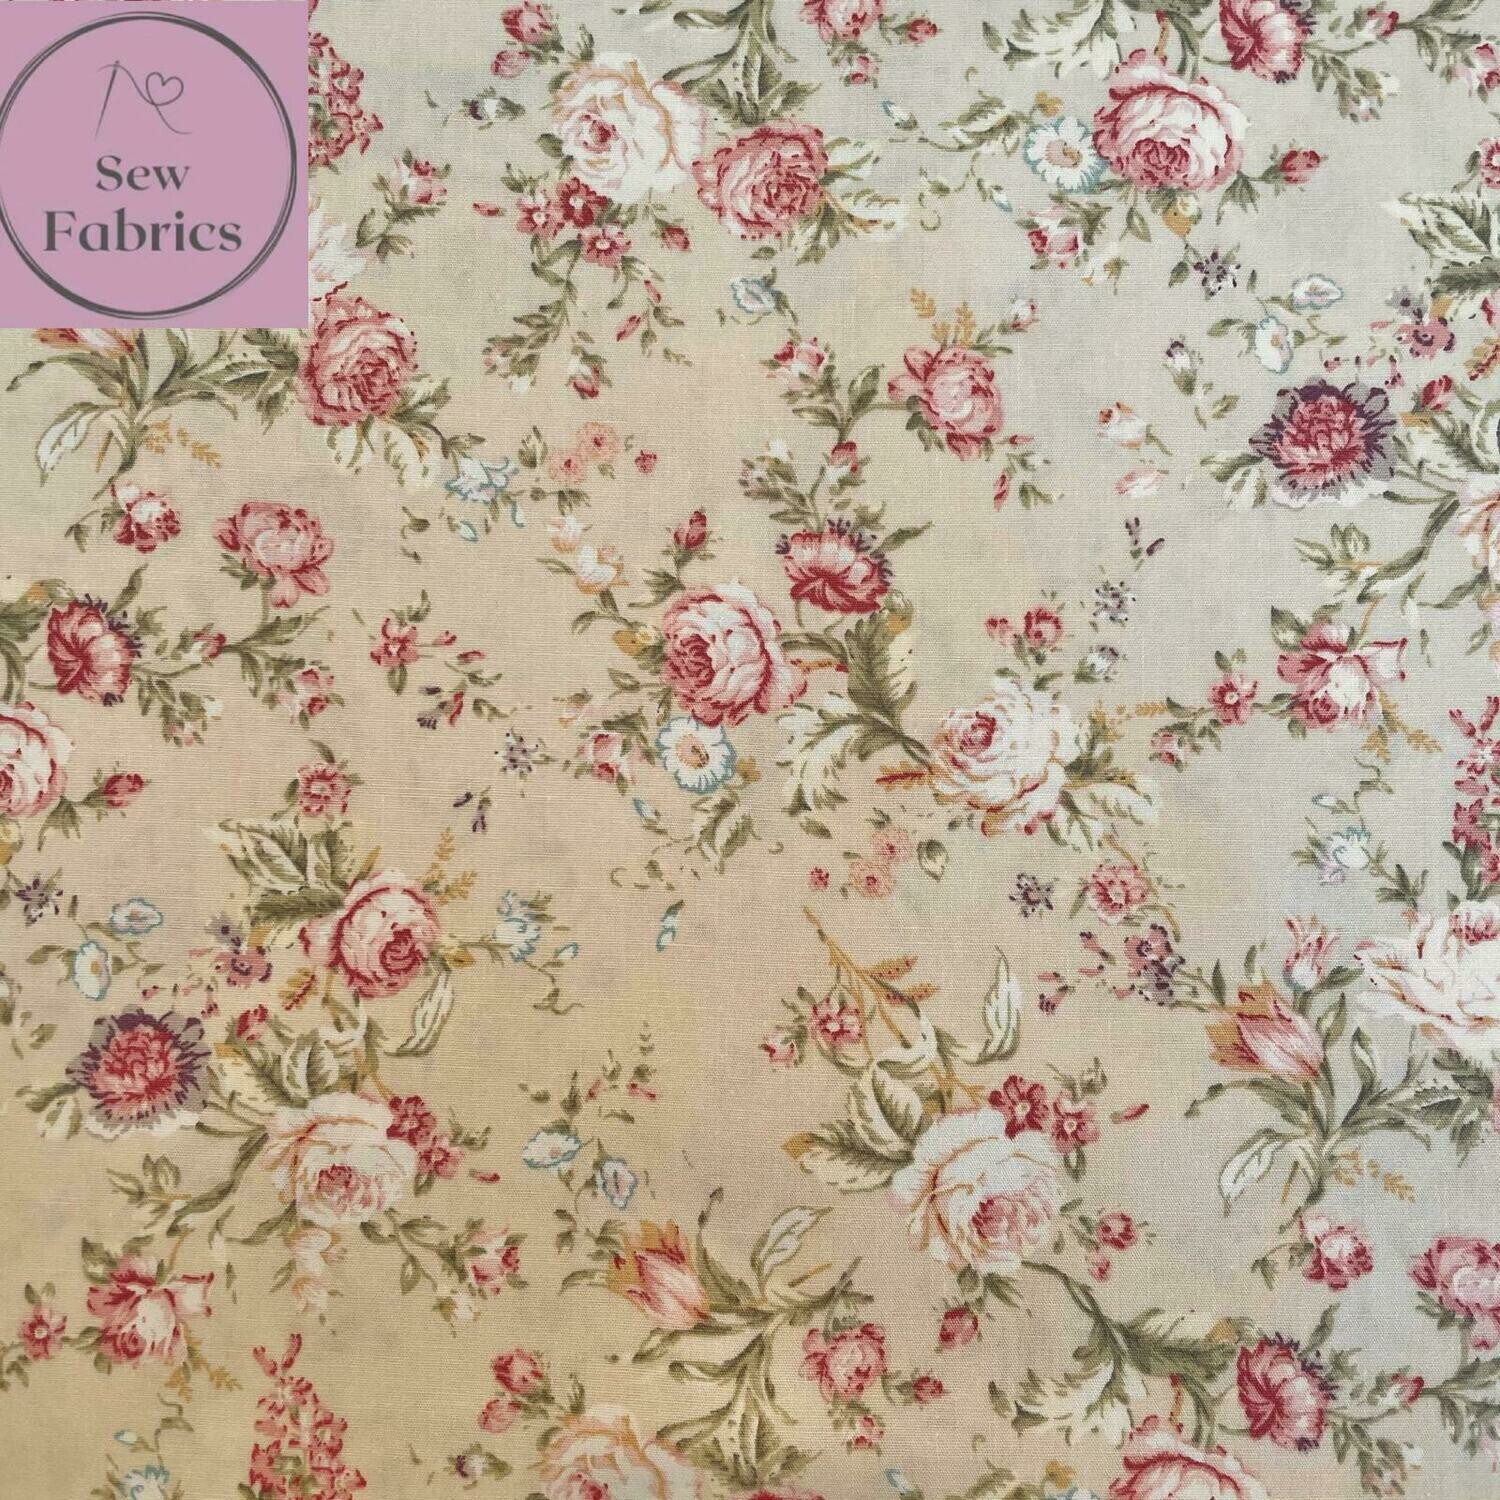 Rose and Hubble Ivory Fabric Cream Vintage Floral 100% Cotton Poplin Flower Material Sewing